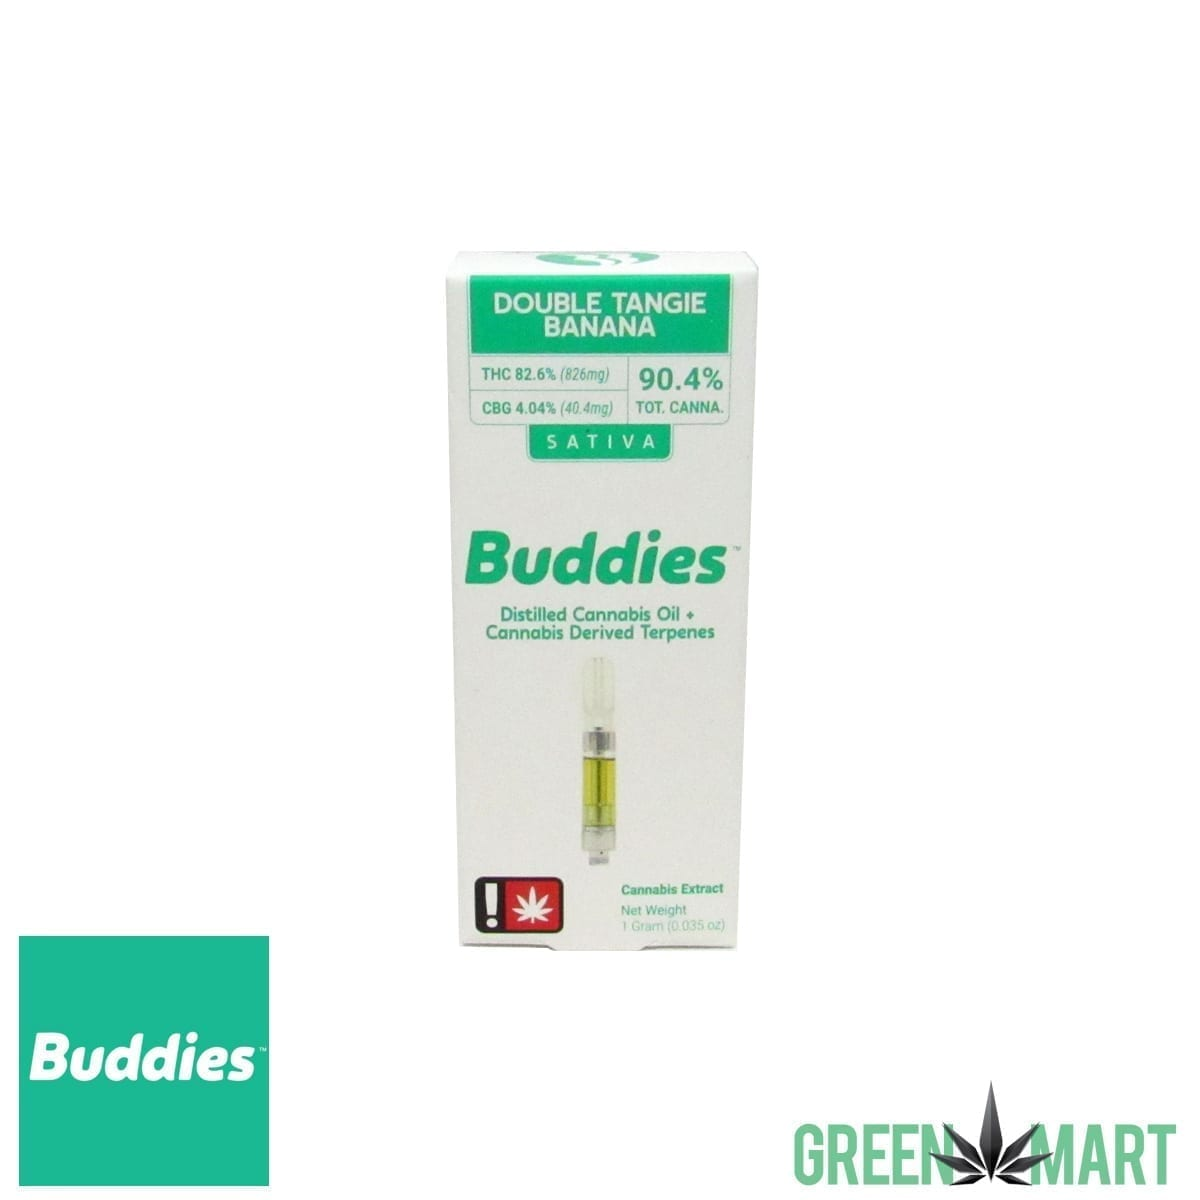 Buddies Brand Distillate Cartridge - Double Tangie Banana